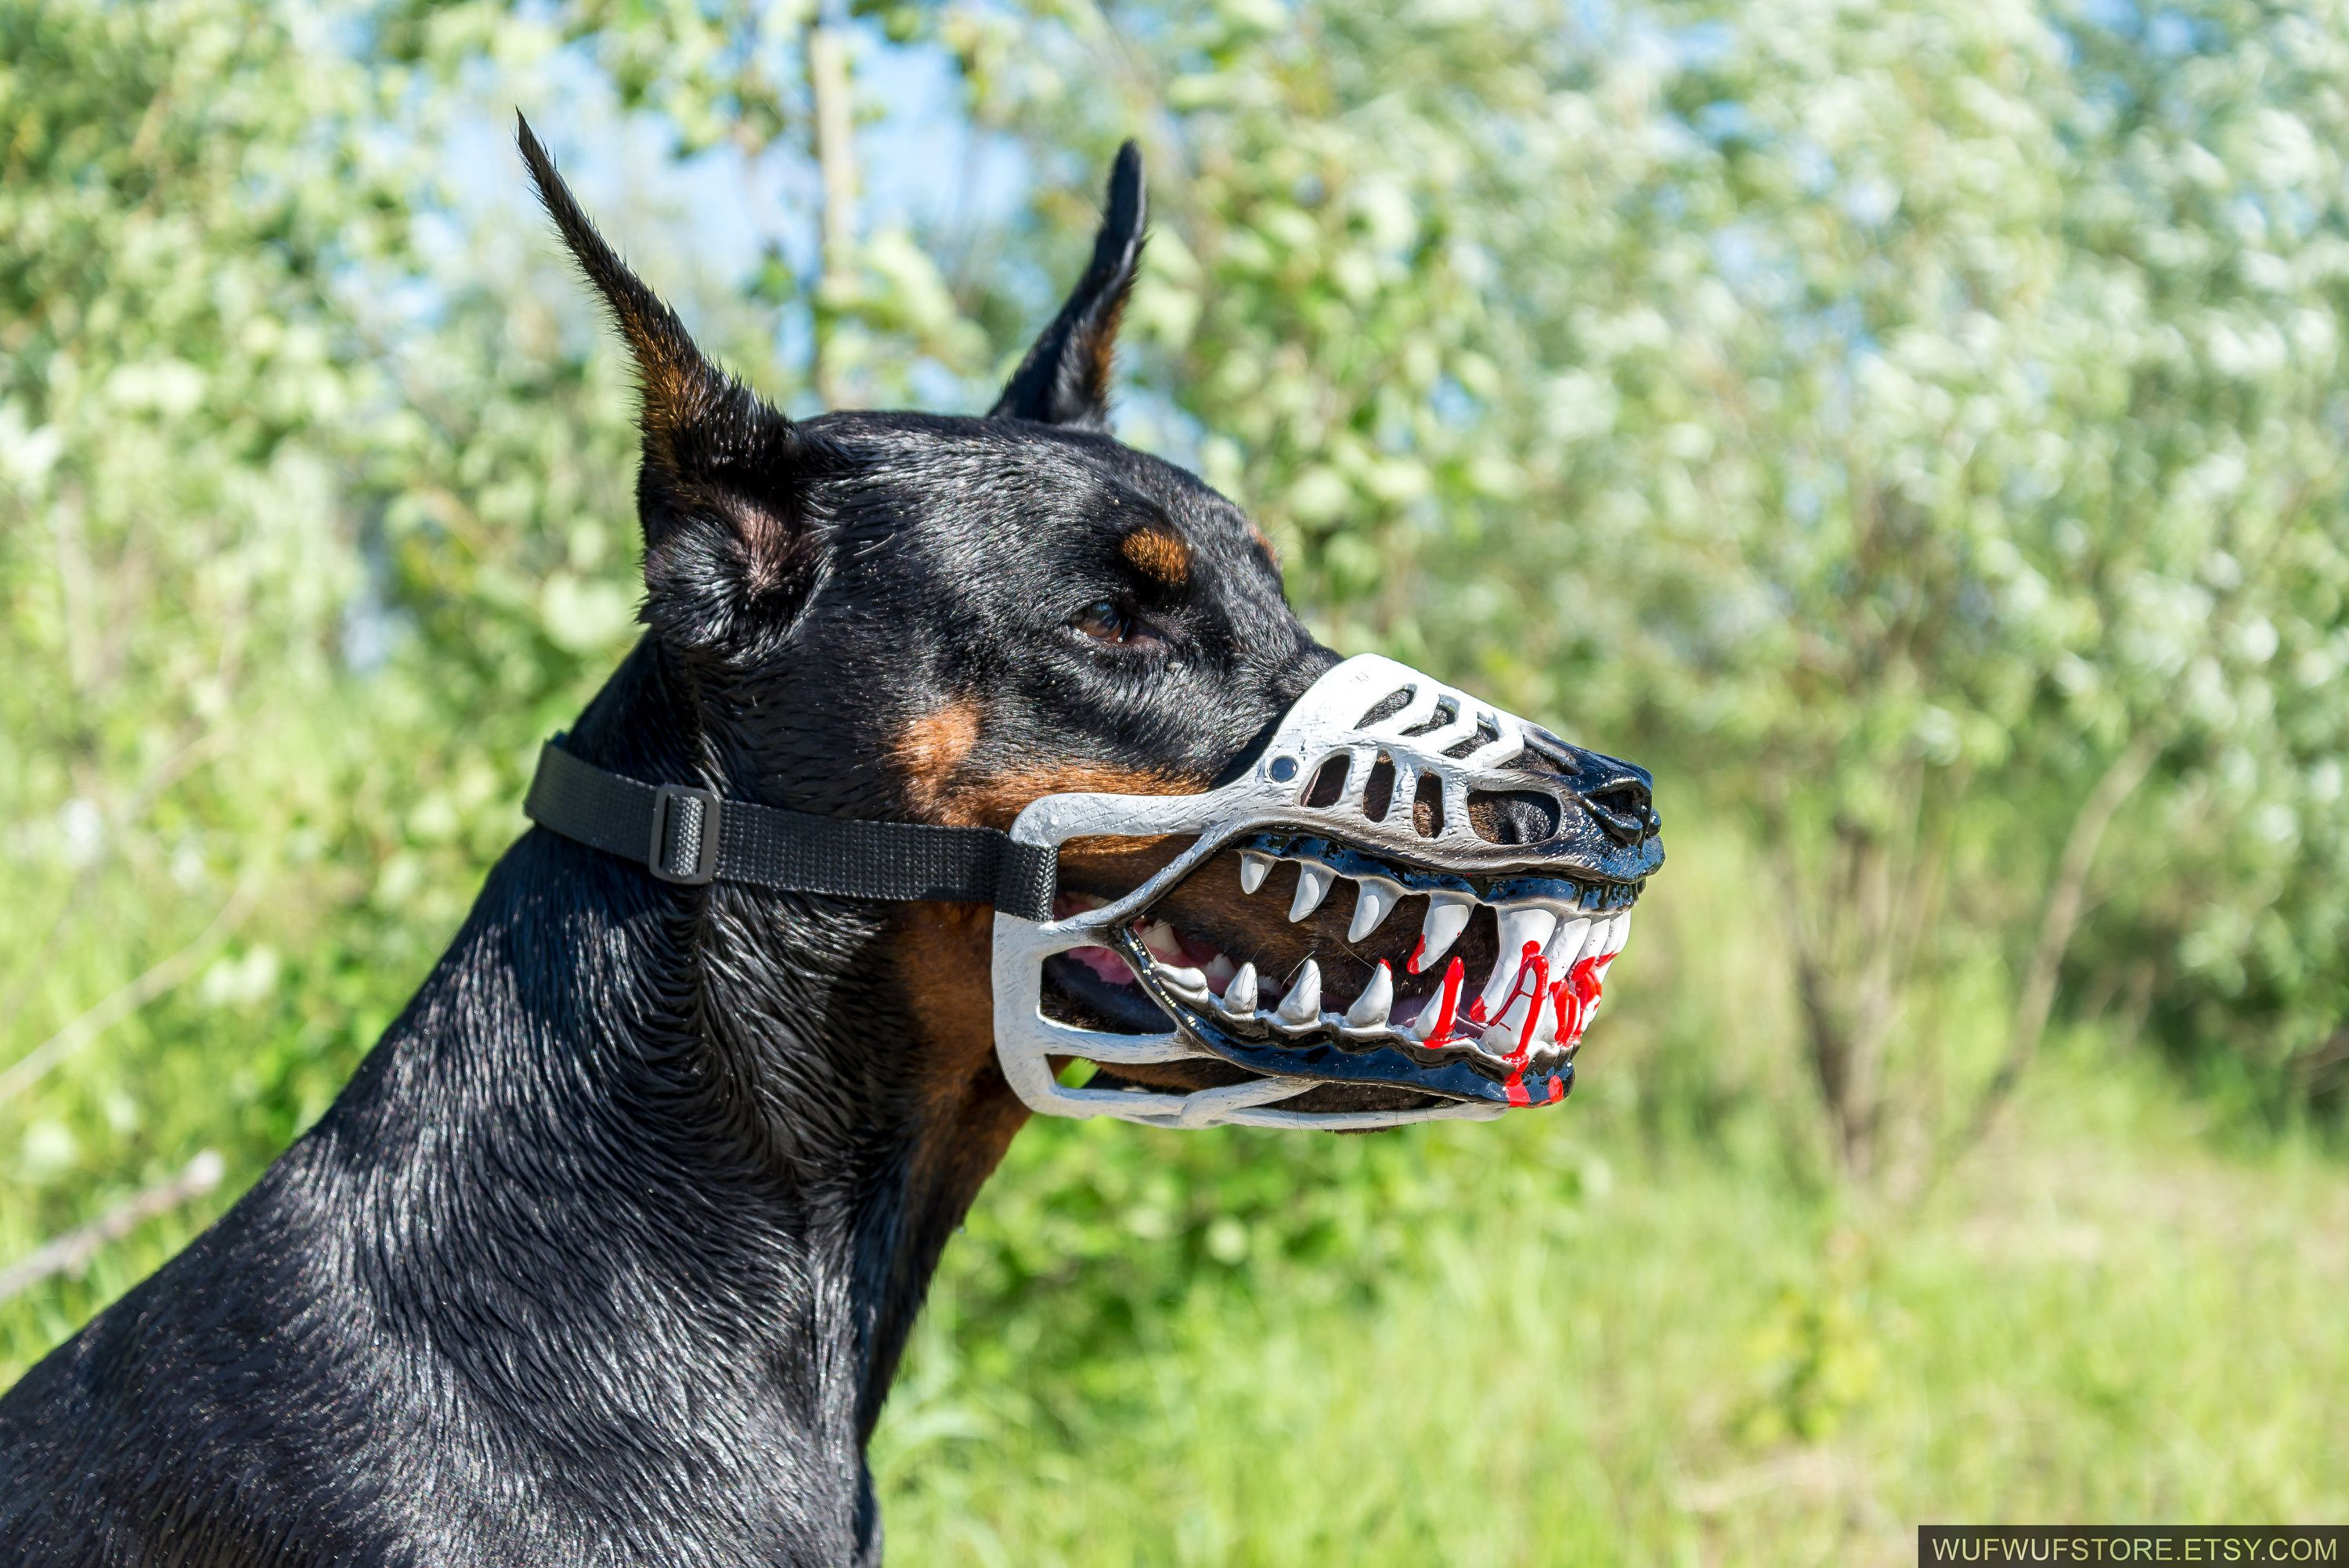 Werewolf Zombie Dogs Muzzle White Color Doberman And Other